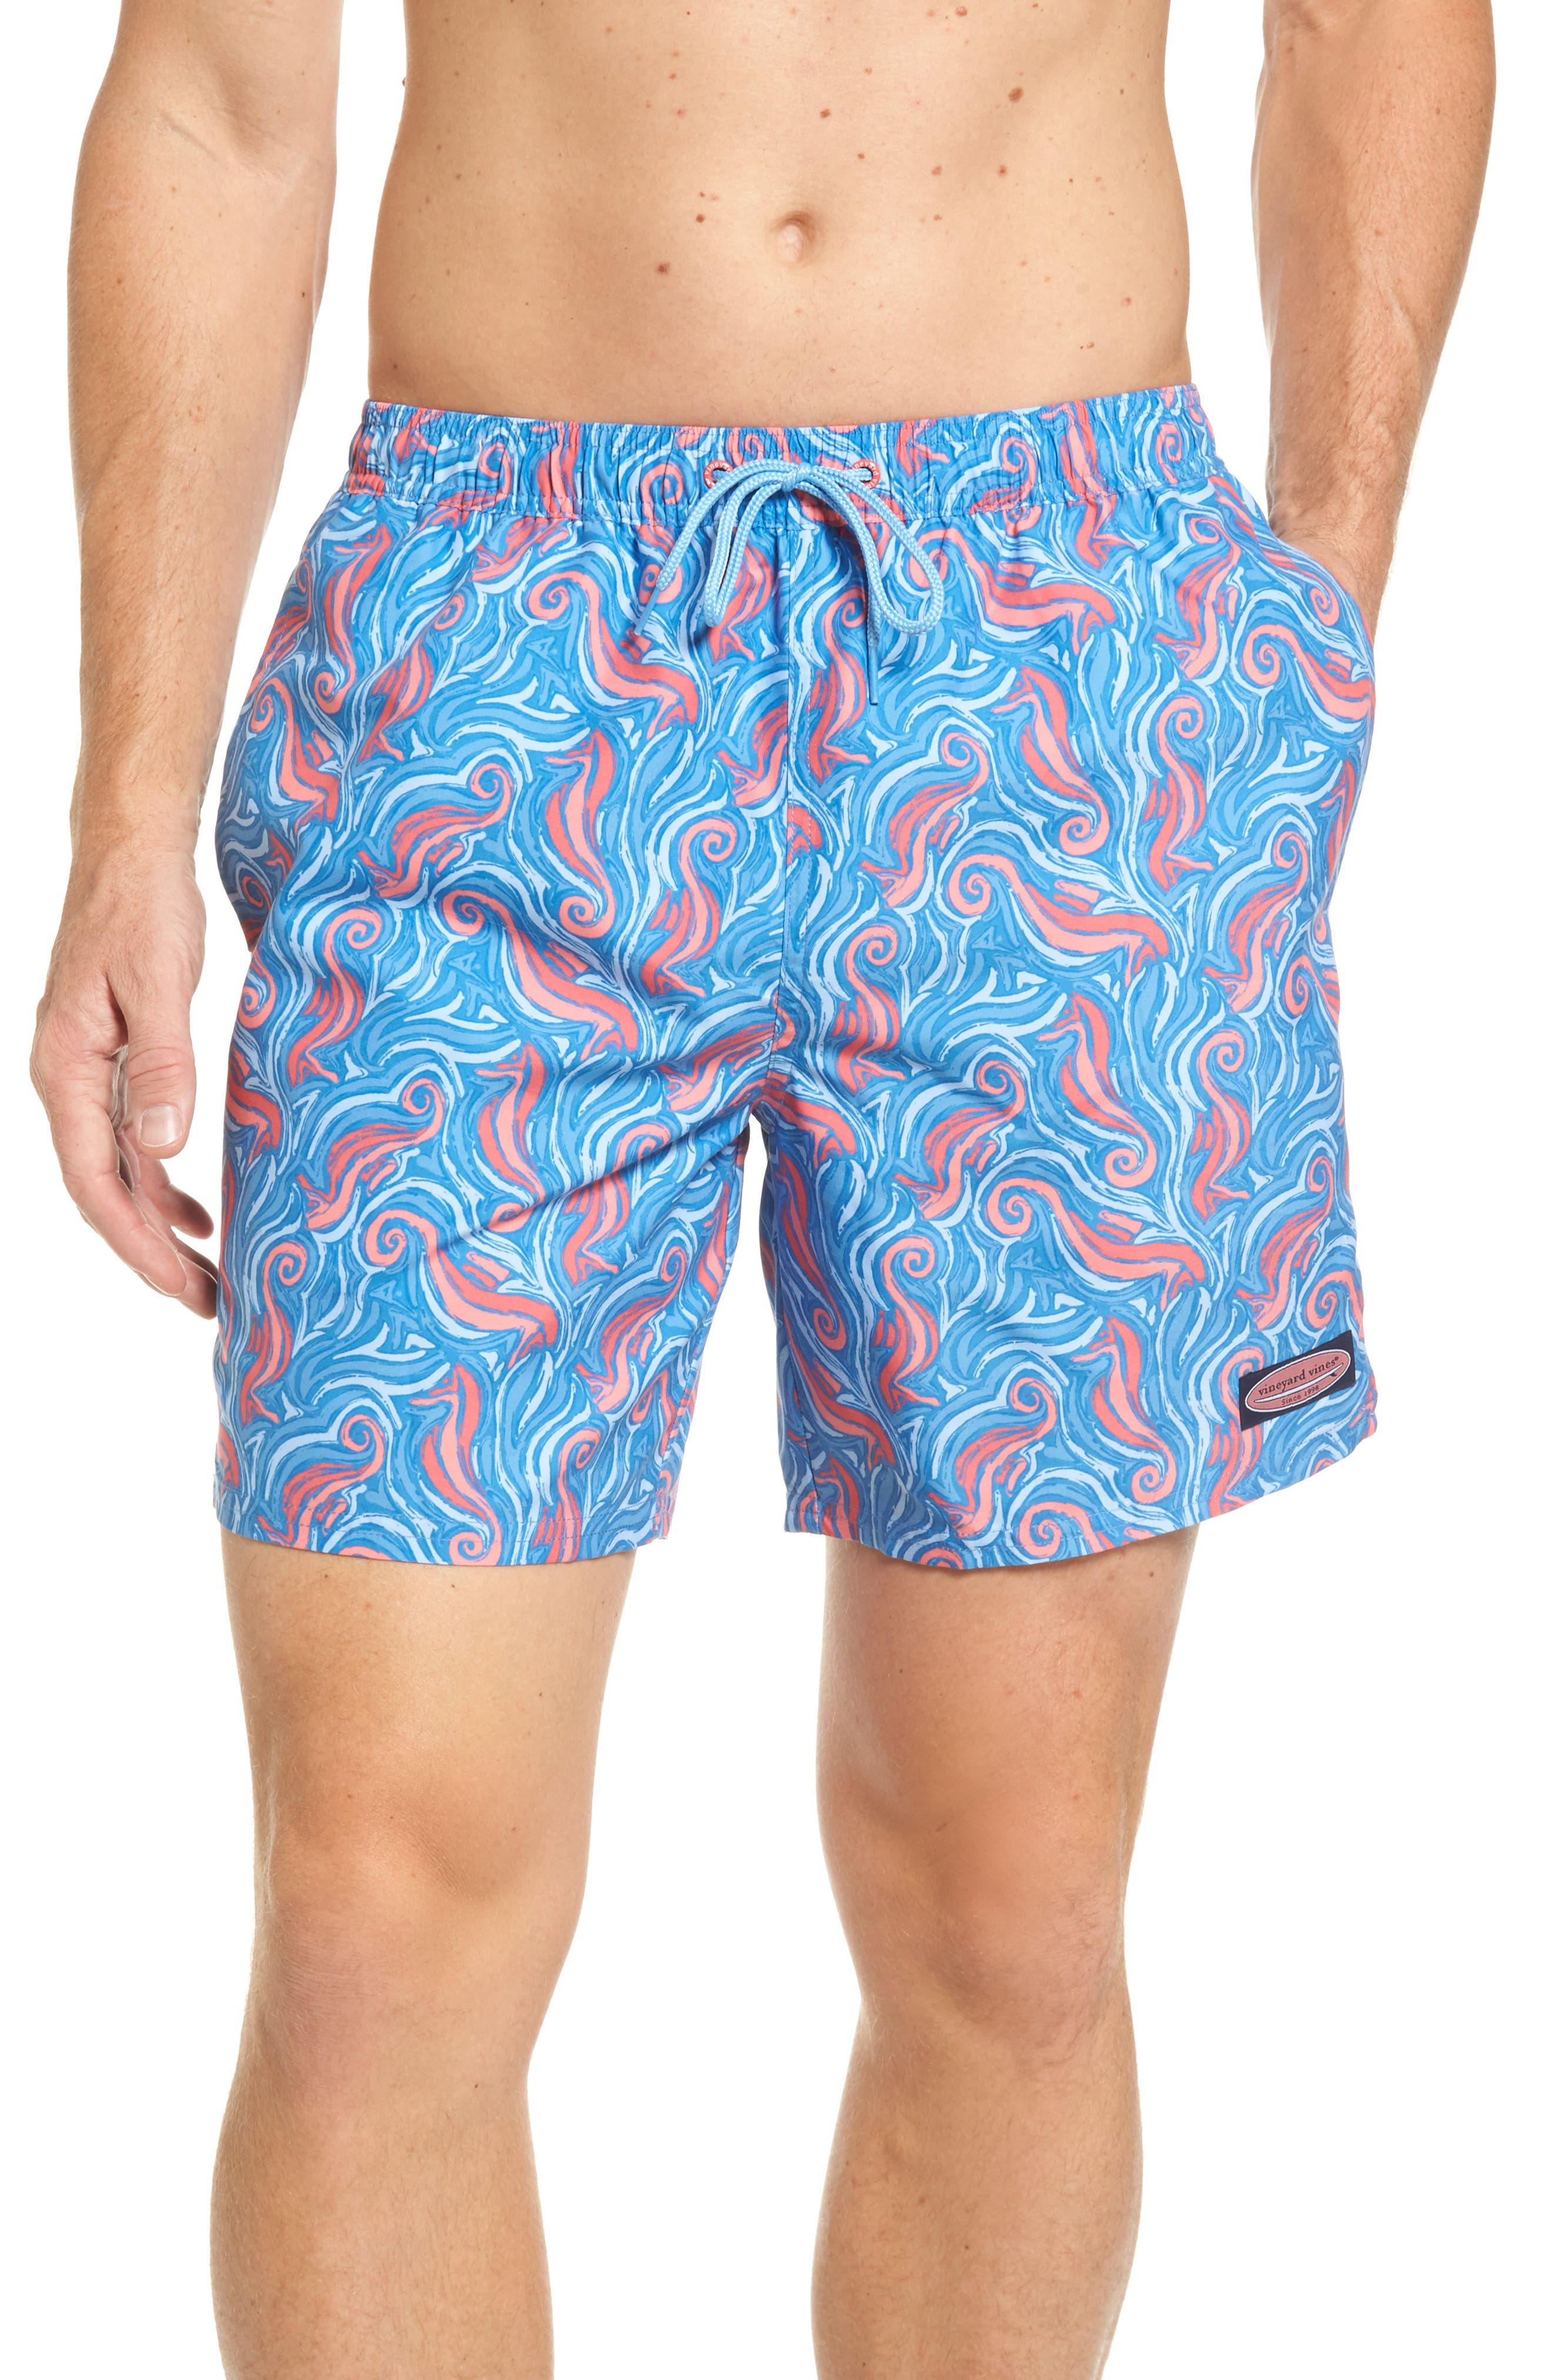 Seahorse Chappy Swim Trunks,                         Main,                         color, Hull Blue